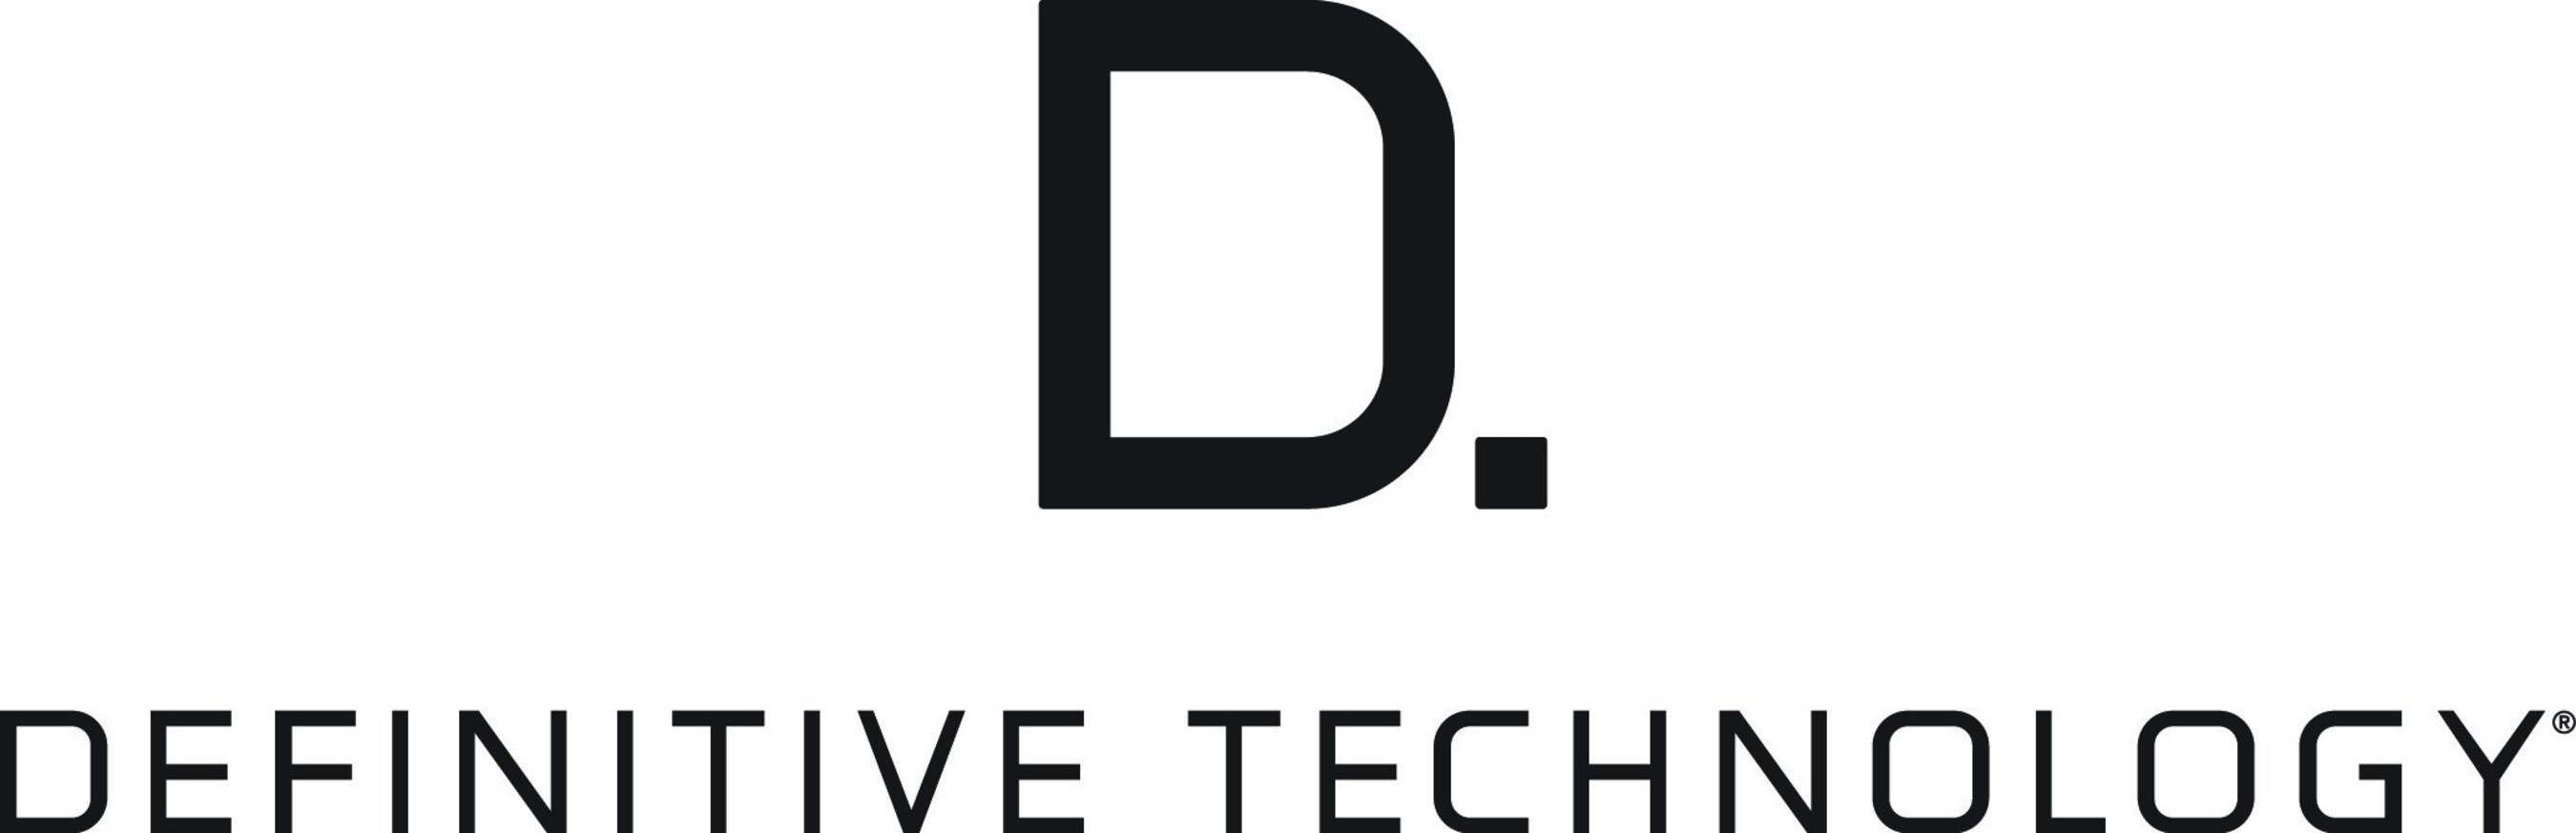 Definitive Technology to Host Fundraiser on June 12 Featuring Performances by John Legend and Tristan Prettyman